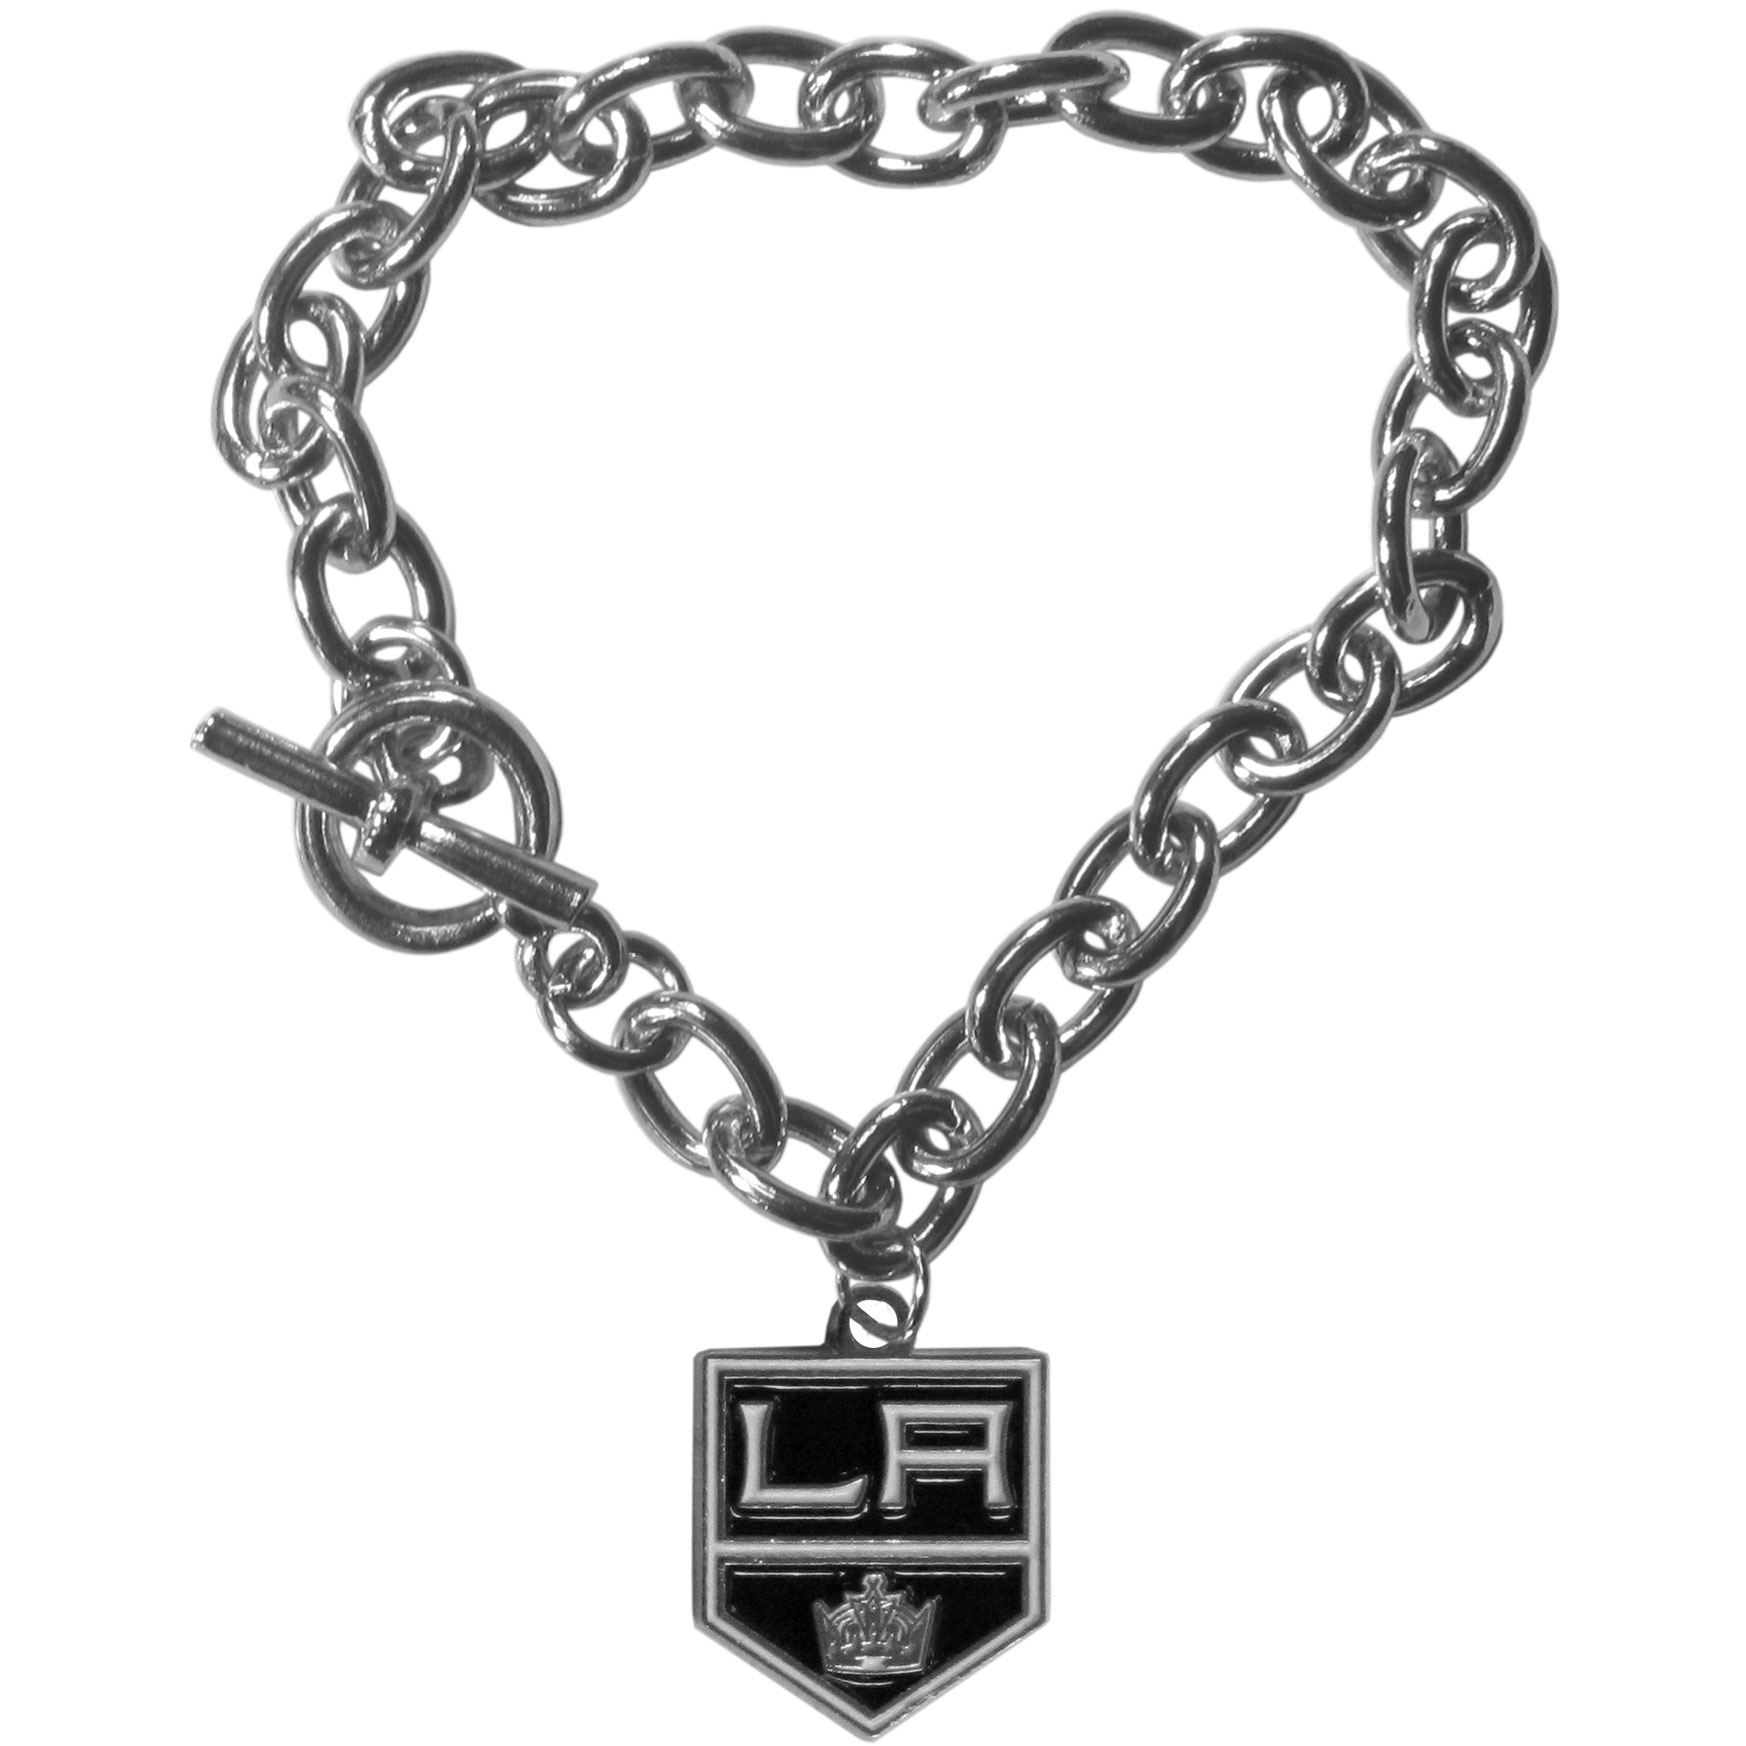 Los Angeles Kings® Charm Chain Bracelet - Our classic single charm bracelet is a great way to show off your team pride! The 7.5 inch large link chain features a high polish Los Angeles Kings® charm and features a toggle clasp which makes it super easy to take on and off.